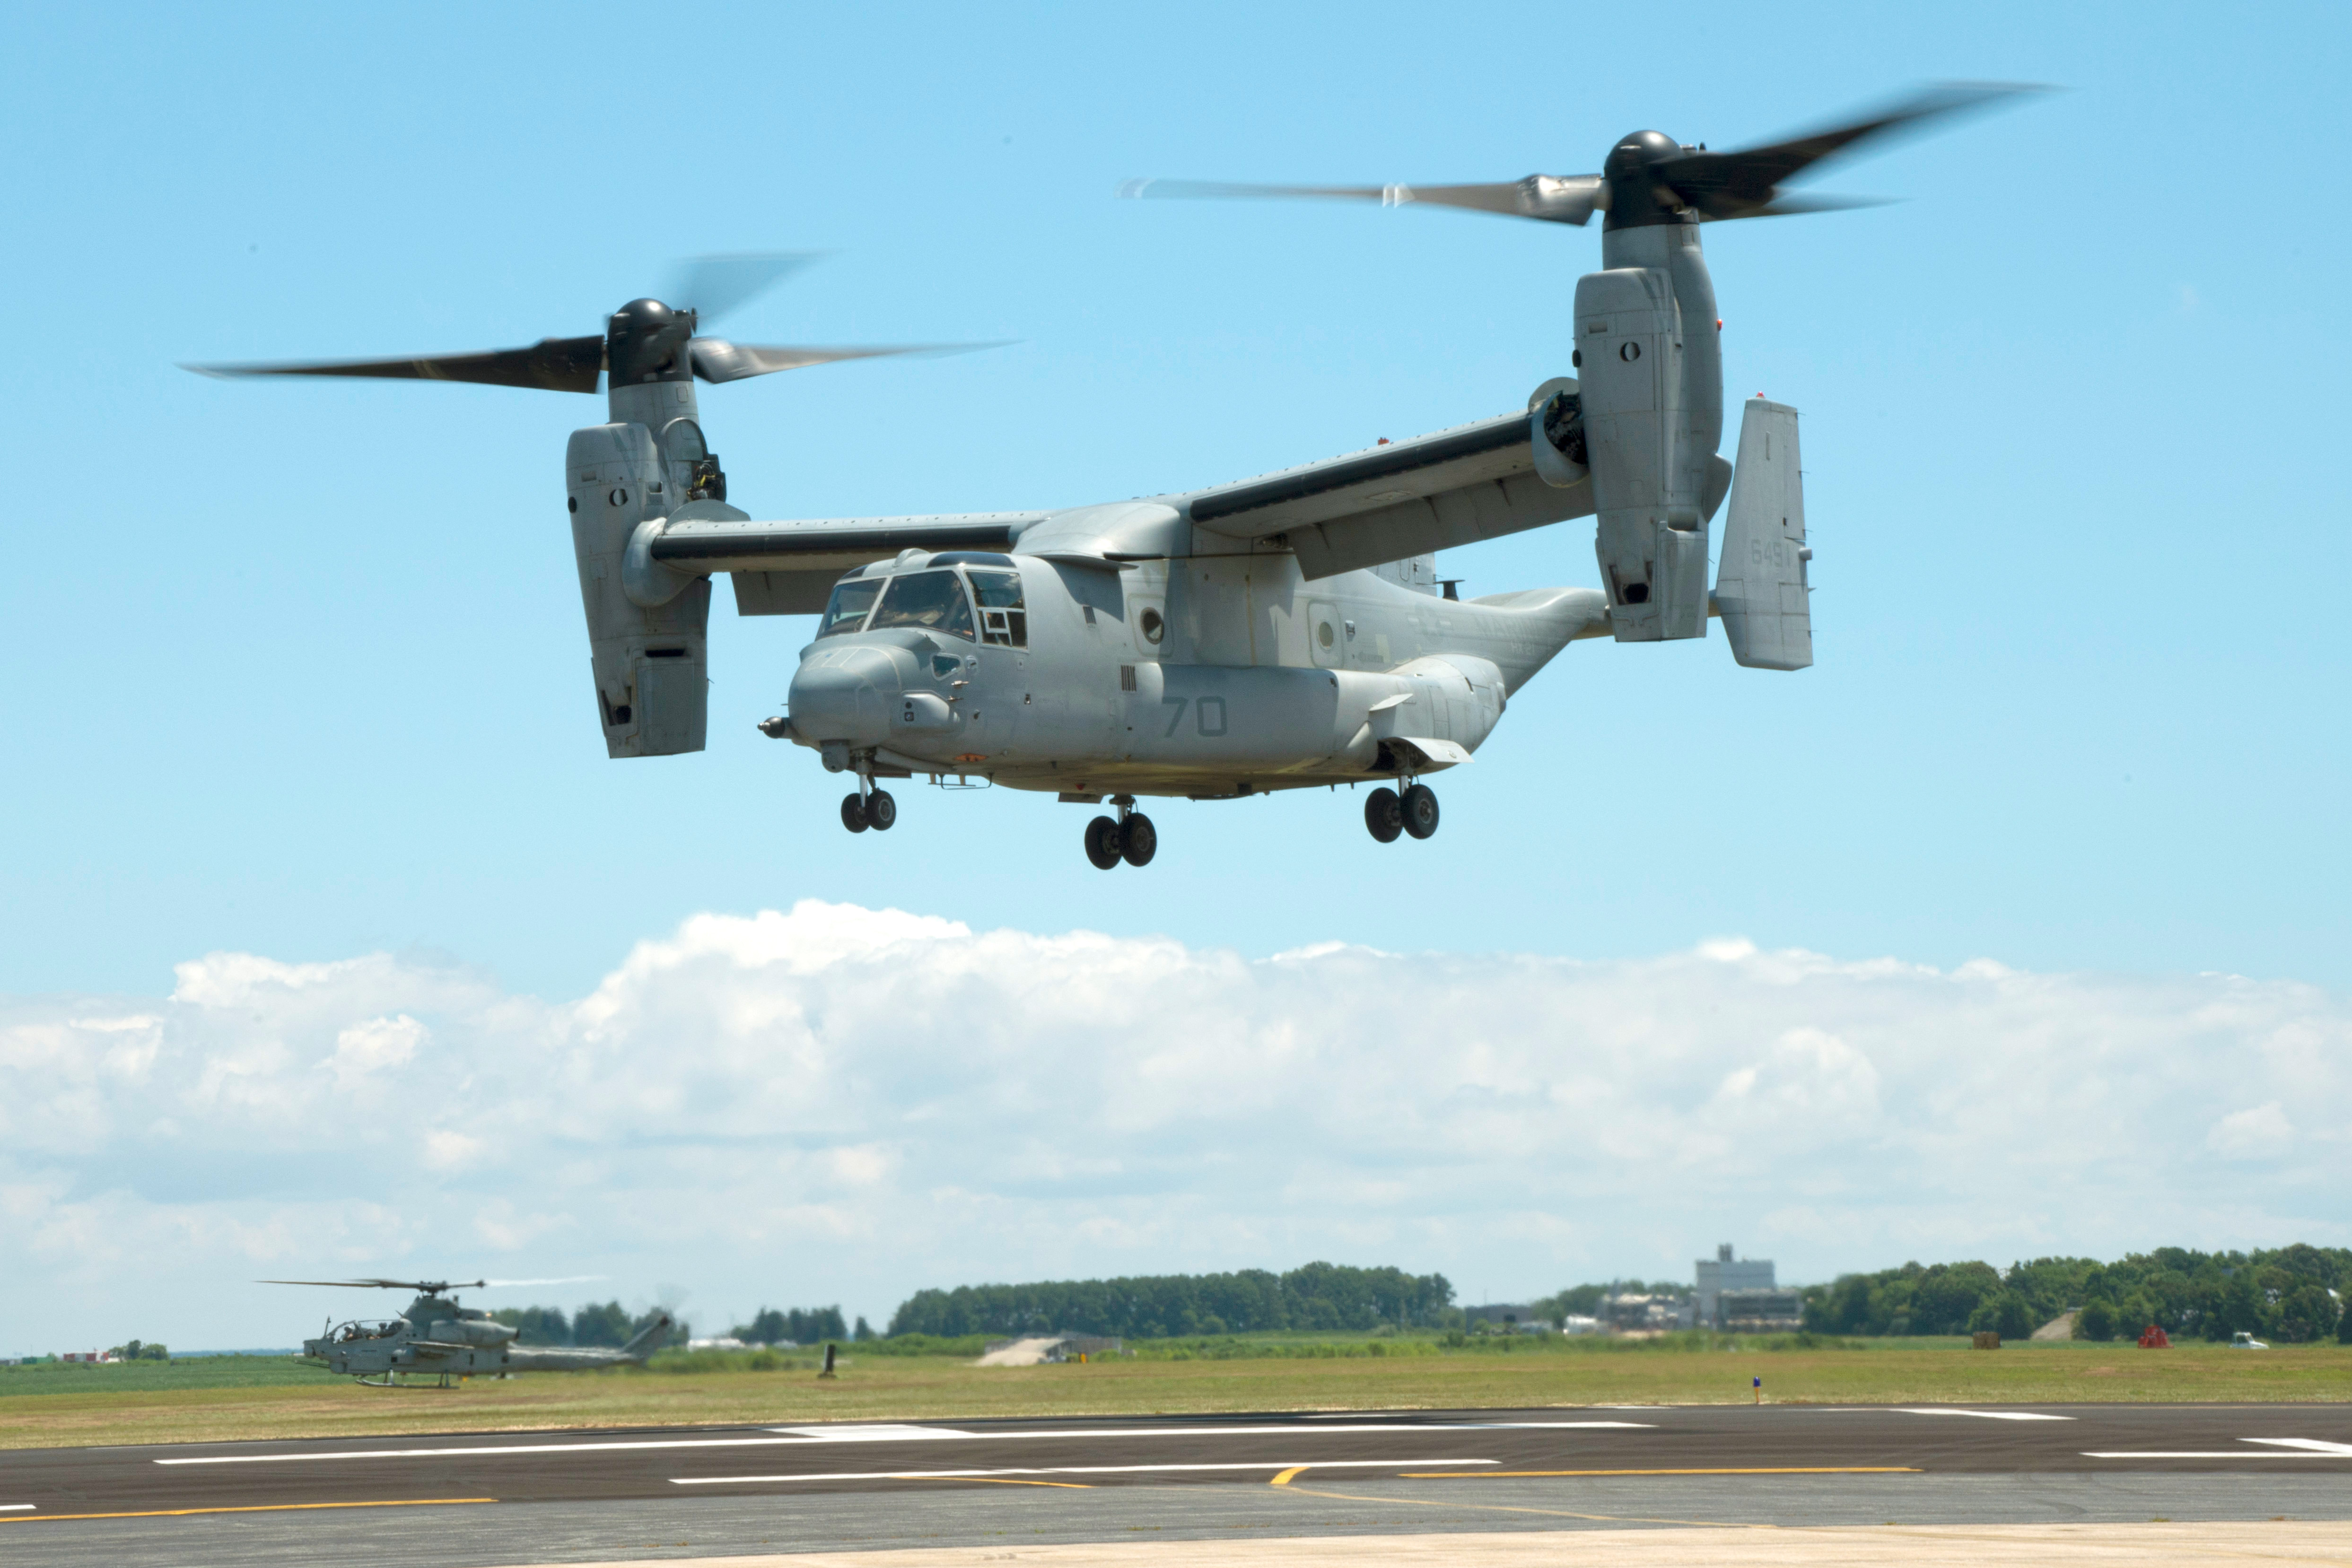 160729-N-JM744-117 PATUXENT RIVER NAVAL AIR STATION, Md. (July 29, 2016) An MV-22B Osprey equipped with a 3-D printed titanium link and fitting inside an engine nacelle maintains a hover during a July 29 demonstration at Patuxent River Naval Air Station, Md. The flight marked Naval Air System Command's first successful flight demonstration of a flight critical aircraft component built using additive manufacturing techniques. (U.S. Navy photo/Released)